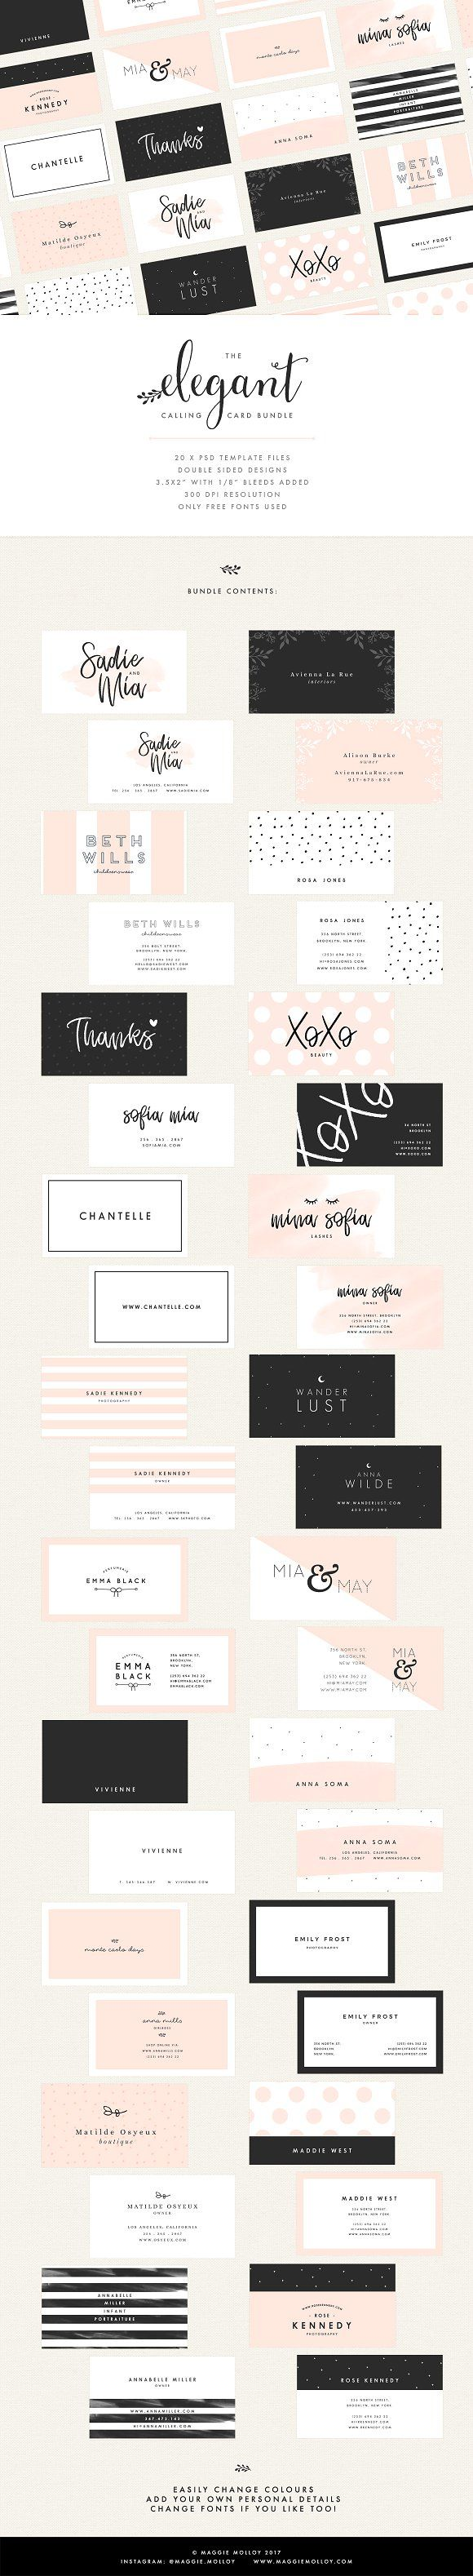 20 Feminine Business Card Templates by Maggie Molloy on ...